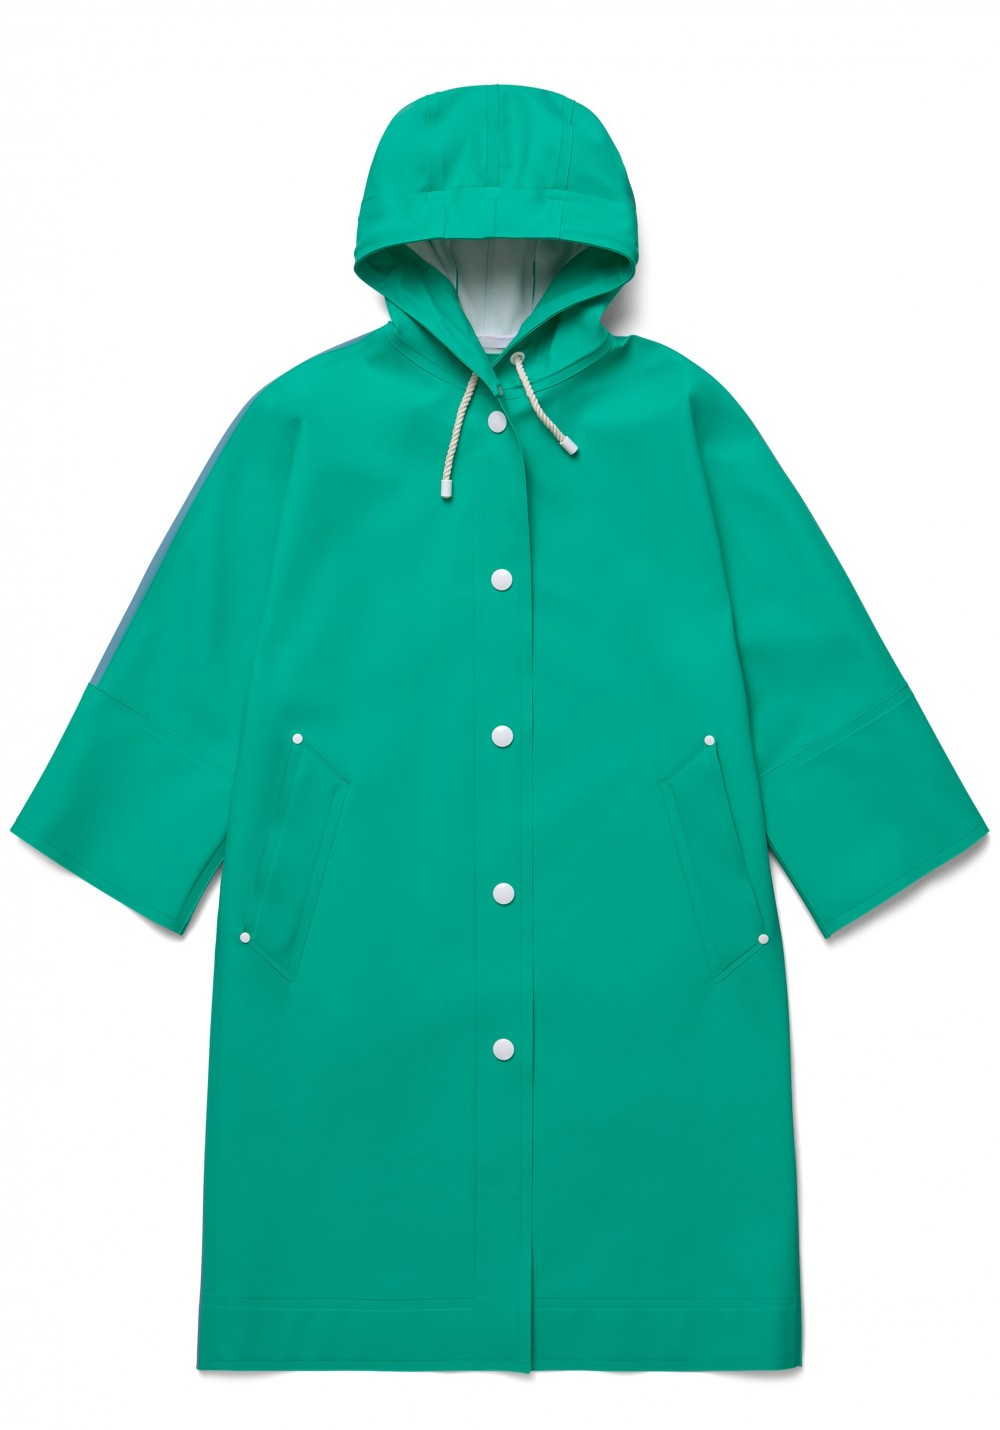 05 Stutterheim for Marni Spring18_Woman_VolumeCoat_EmeraldGreenBlock_Product